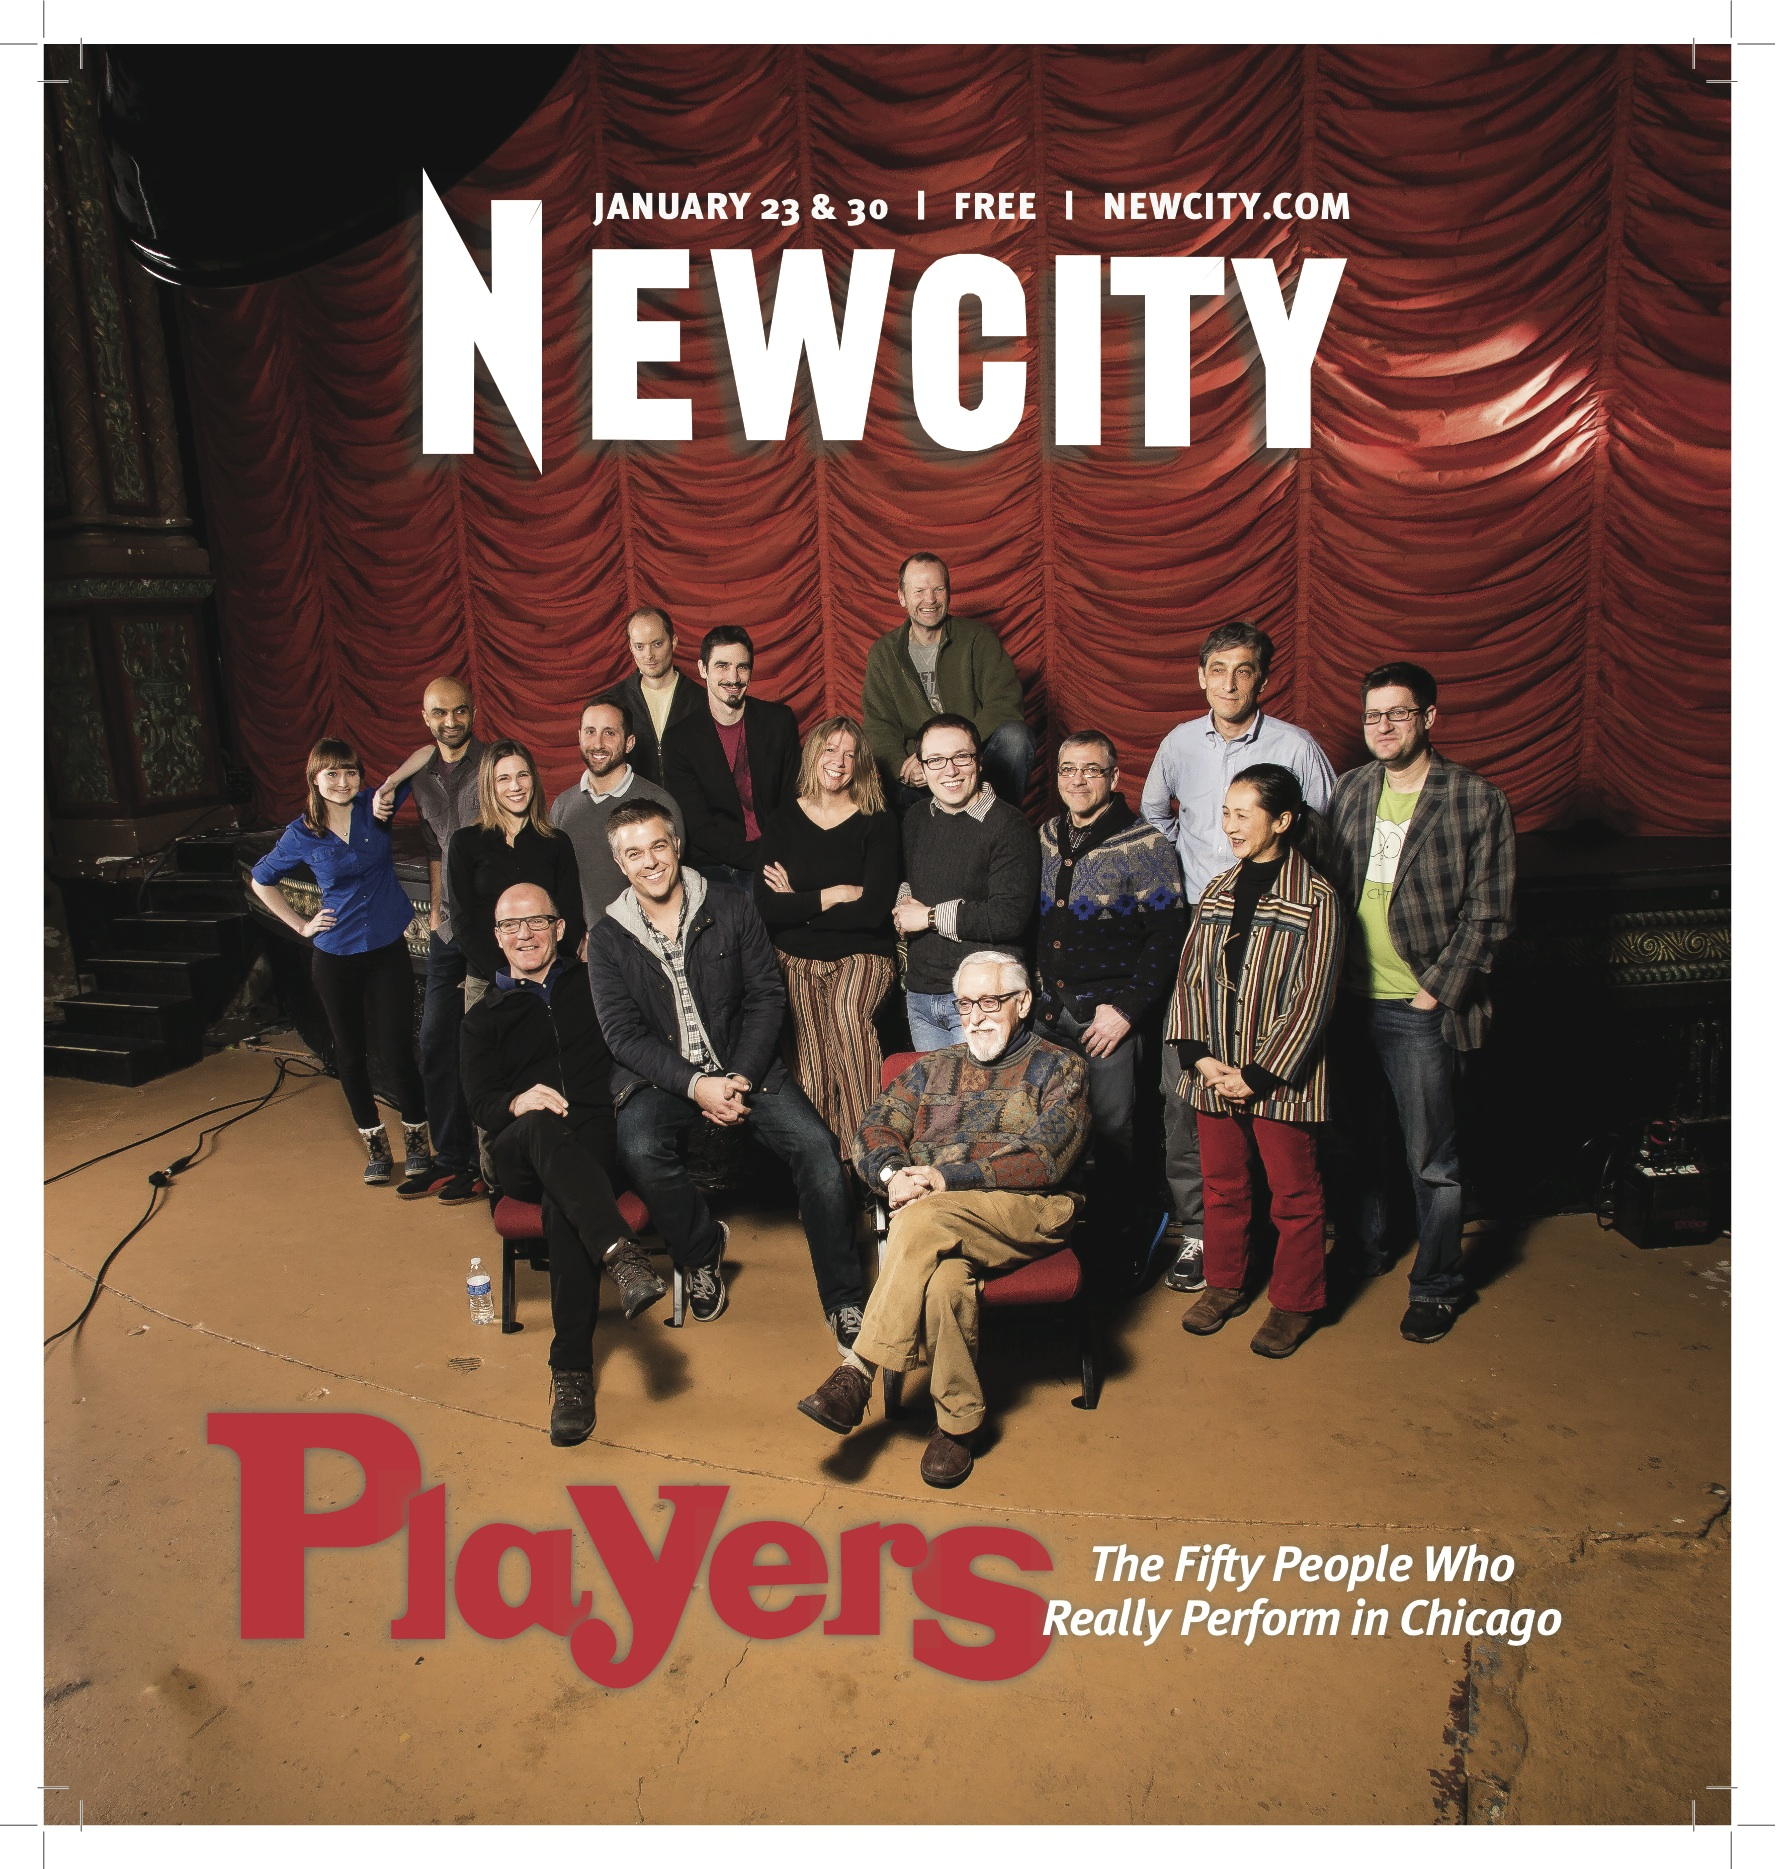 Players: The Fifty People Who Really Perform in Chicago